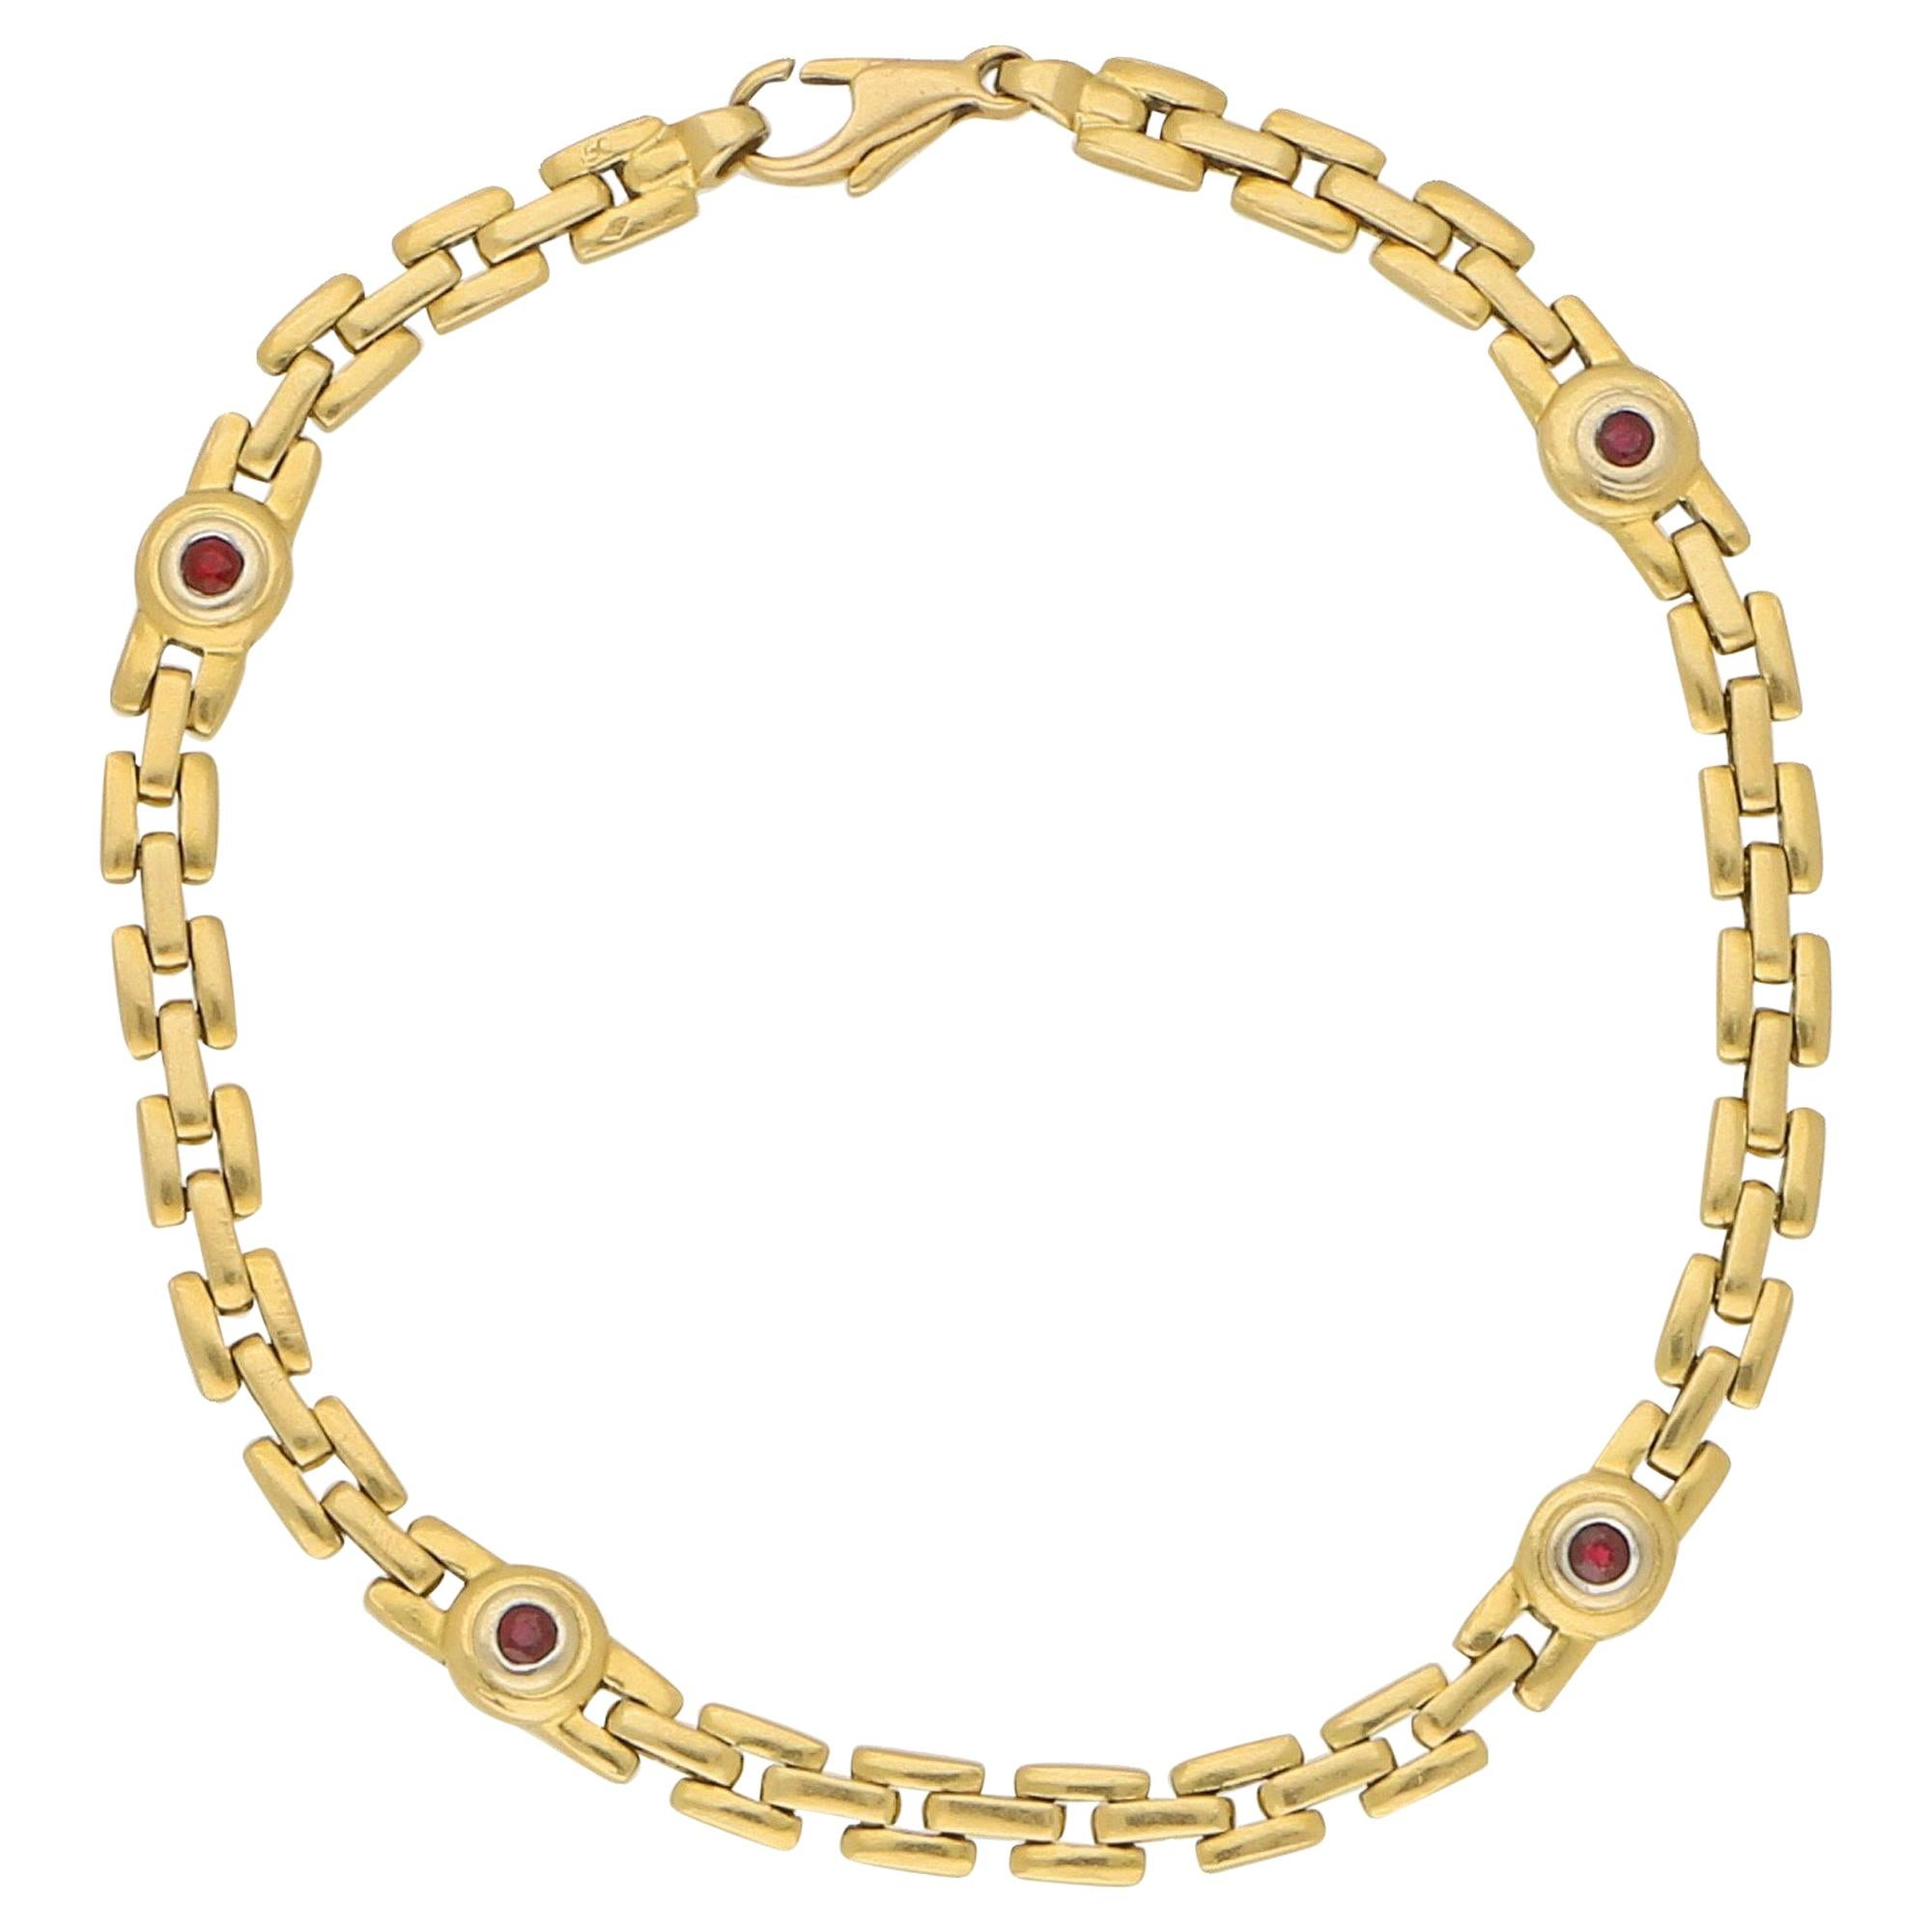 Red Ruby Chain Link Bracelet Set in 18 Karat Yellow Gold